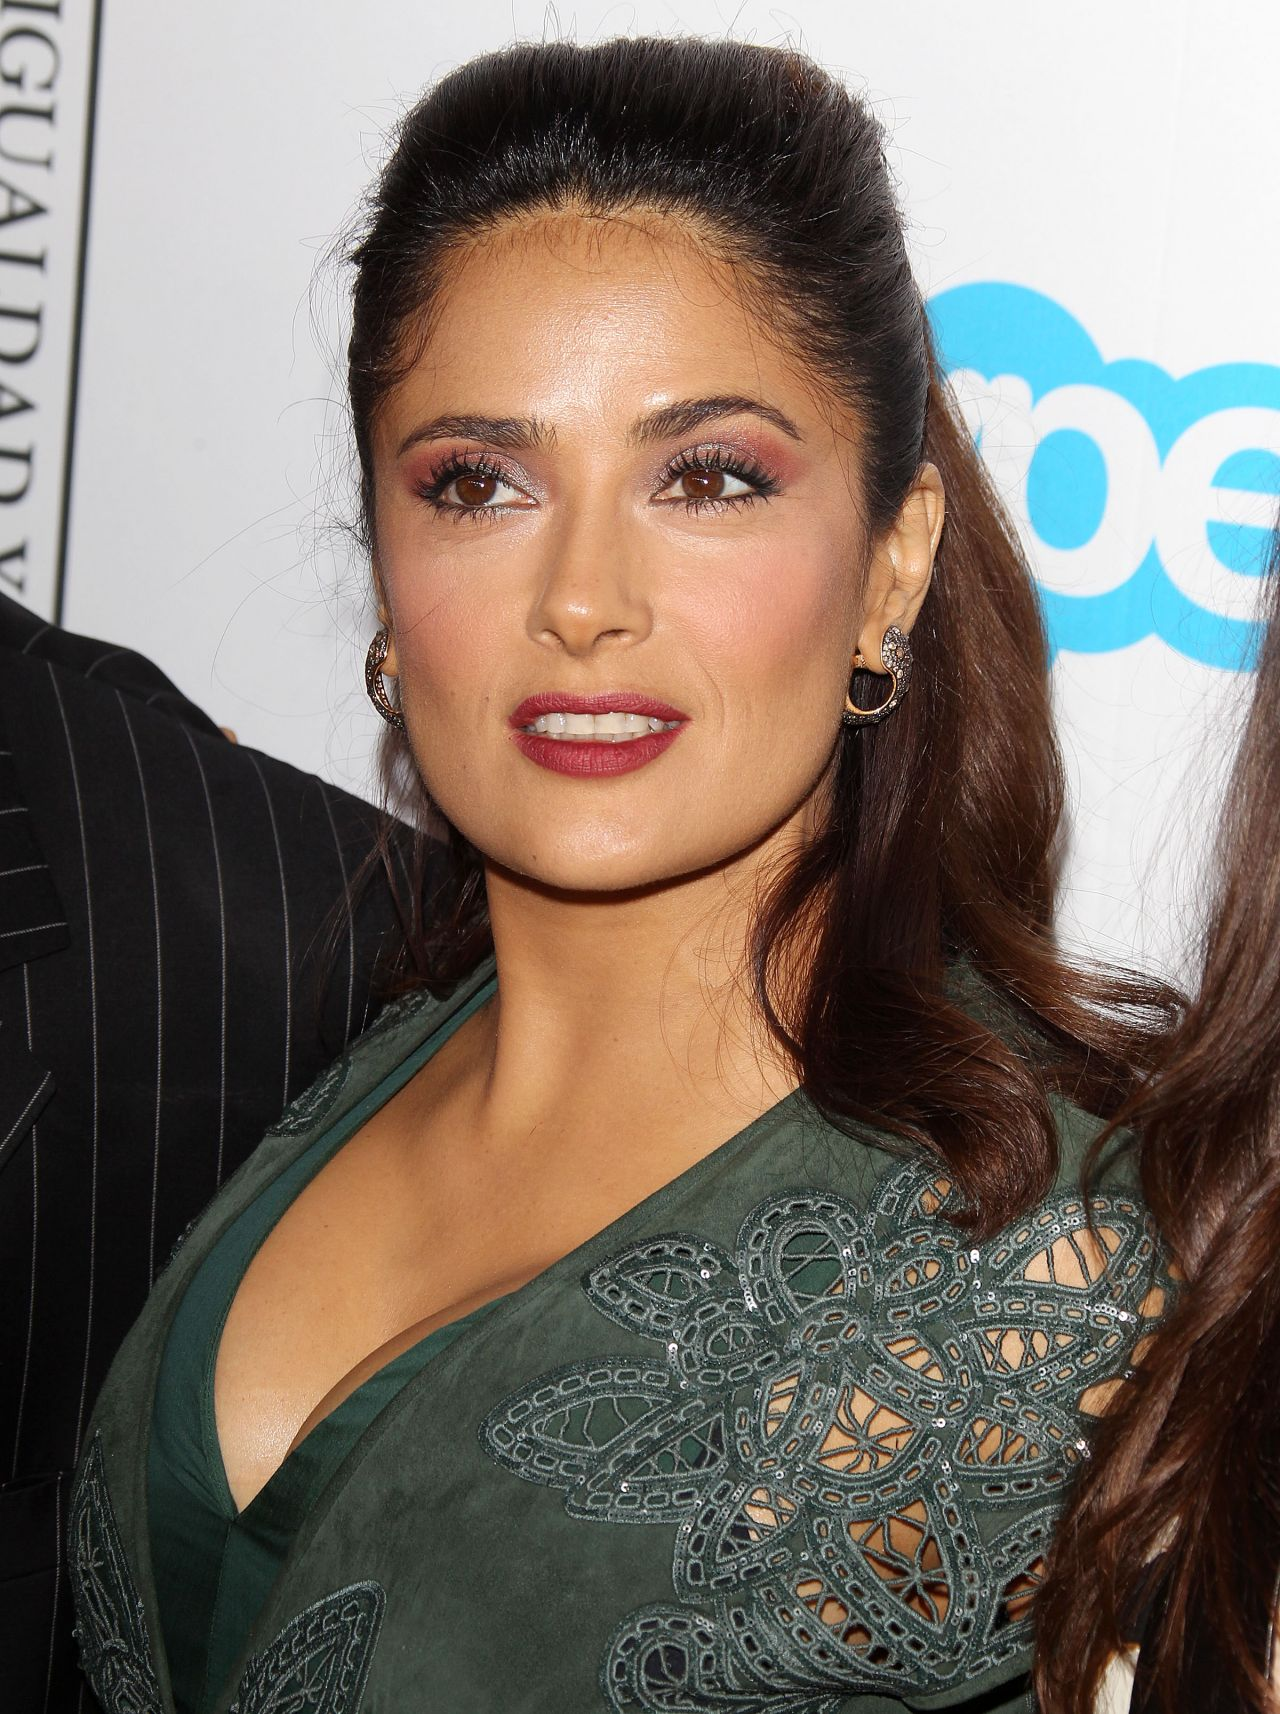 Salma Hayek - Equality Nows Make Equality Reality Event -7872